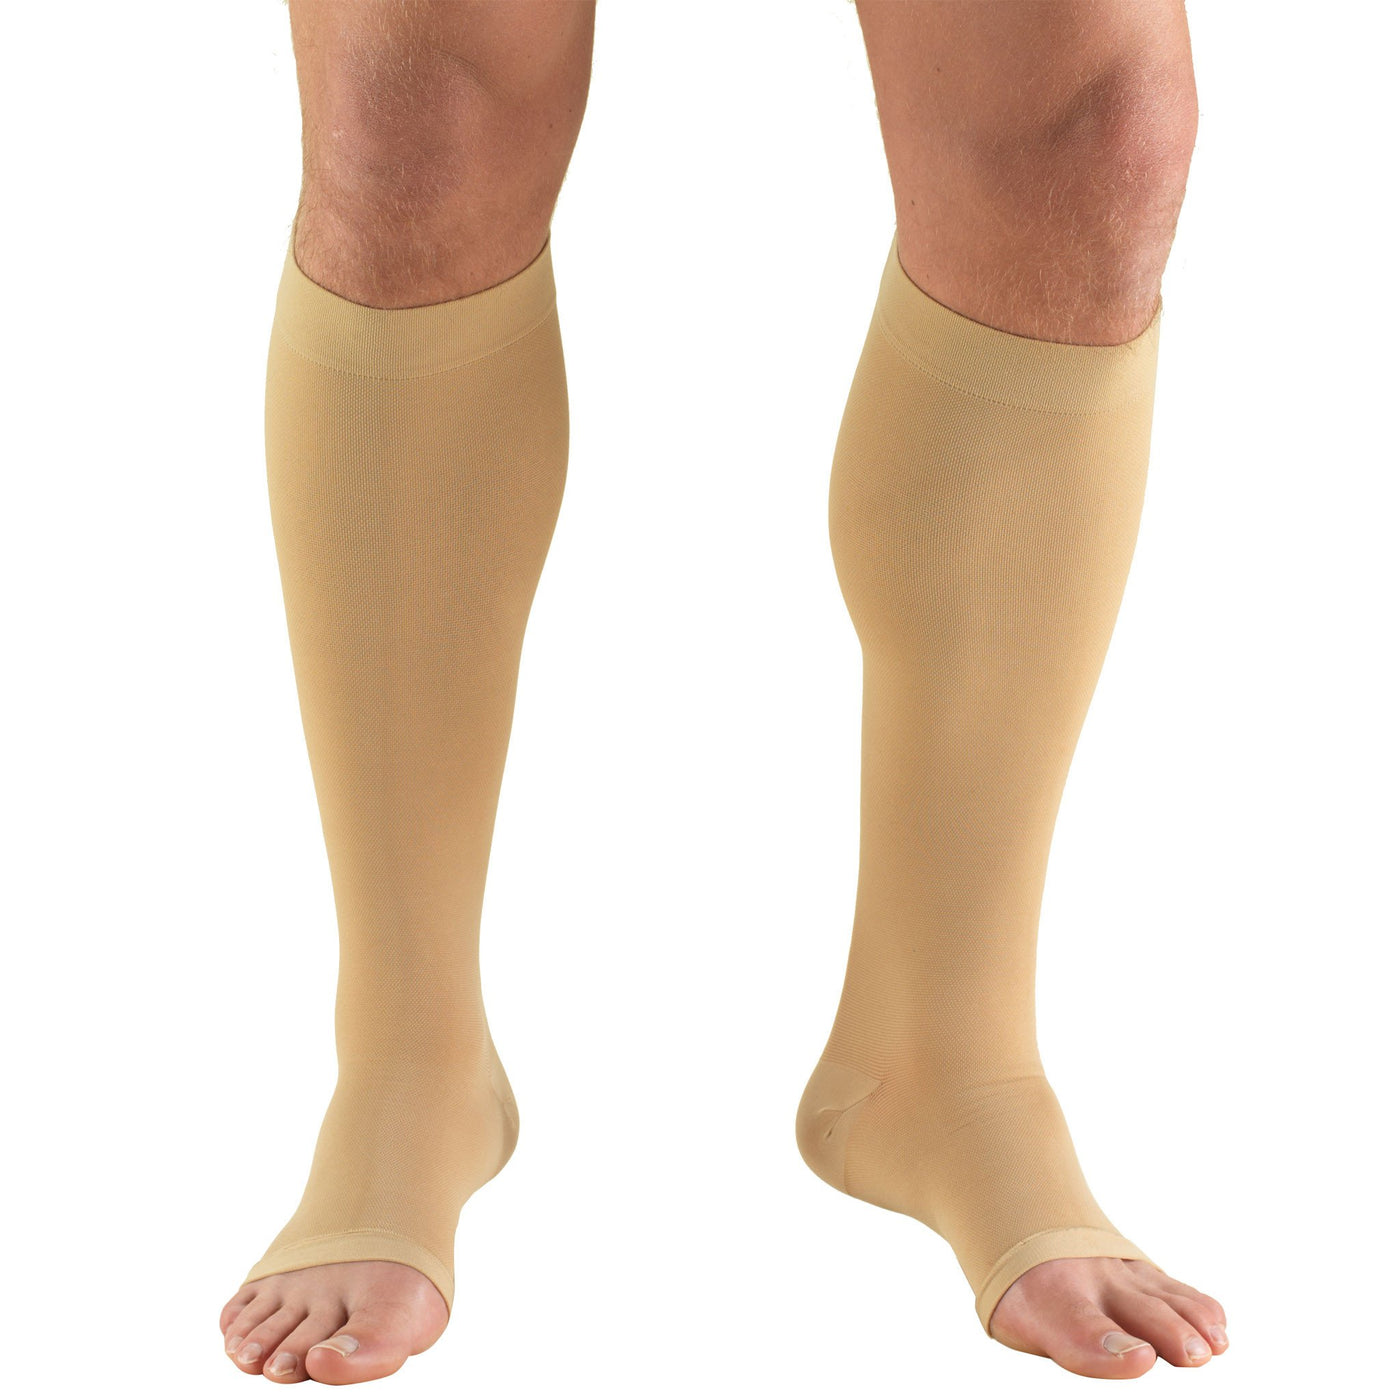 924be77c612 Truform Unisex Compression Stockings